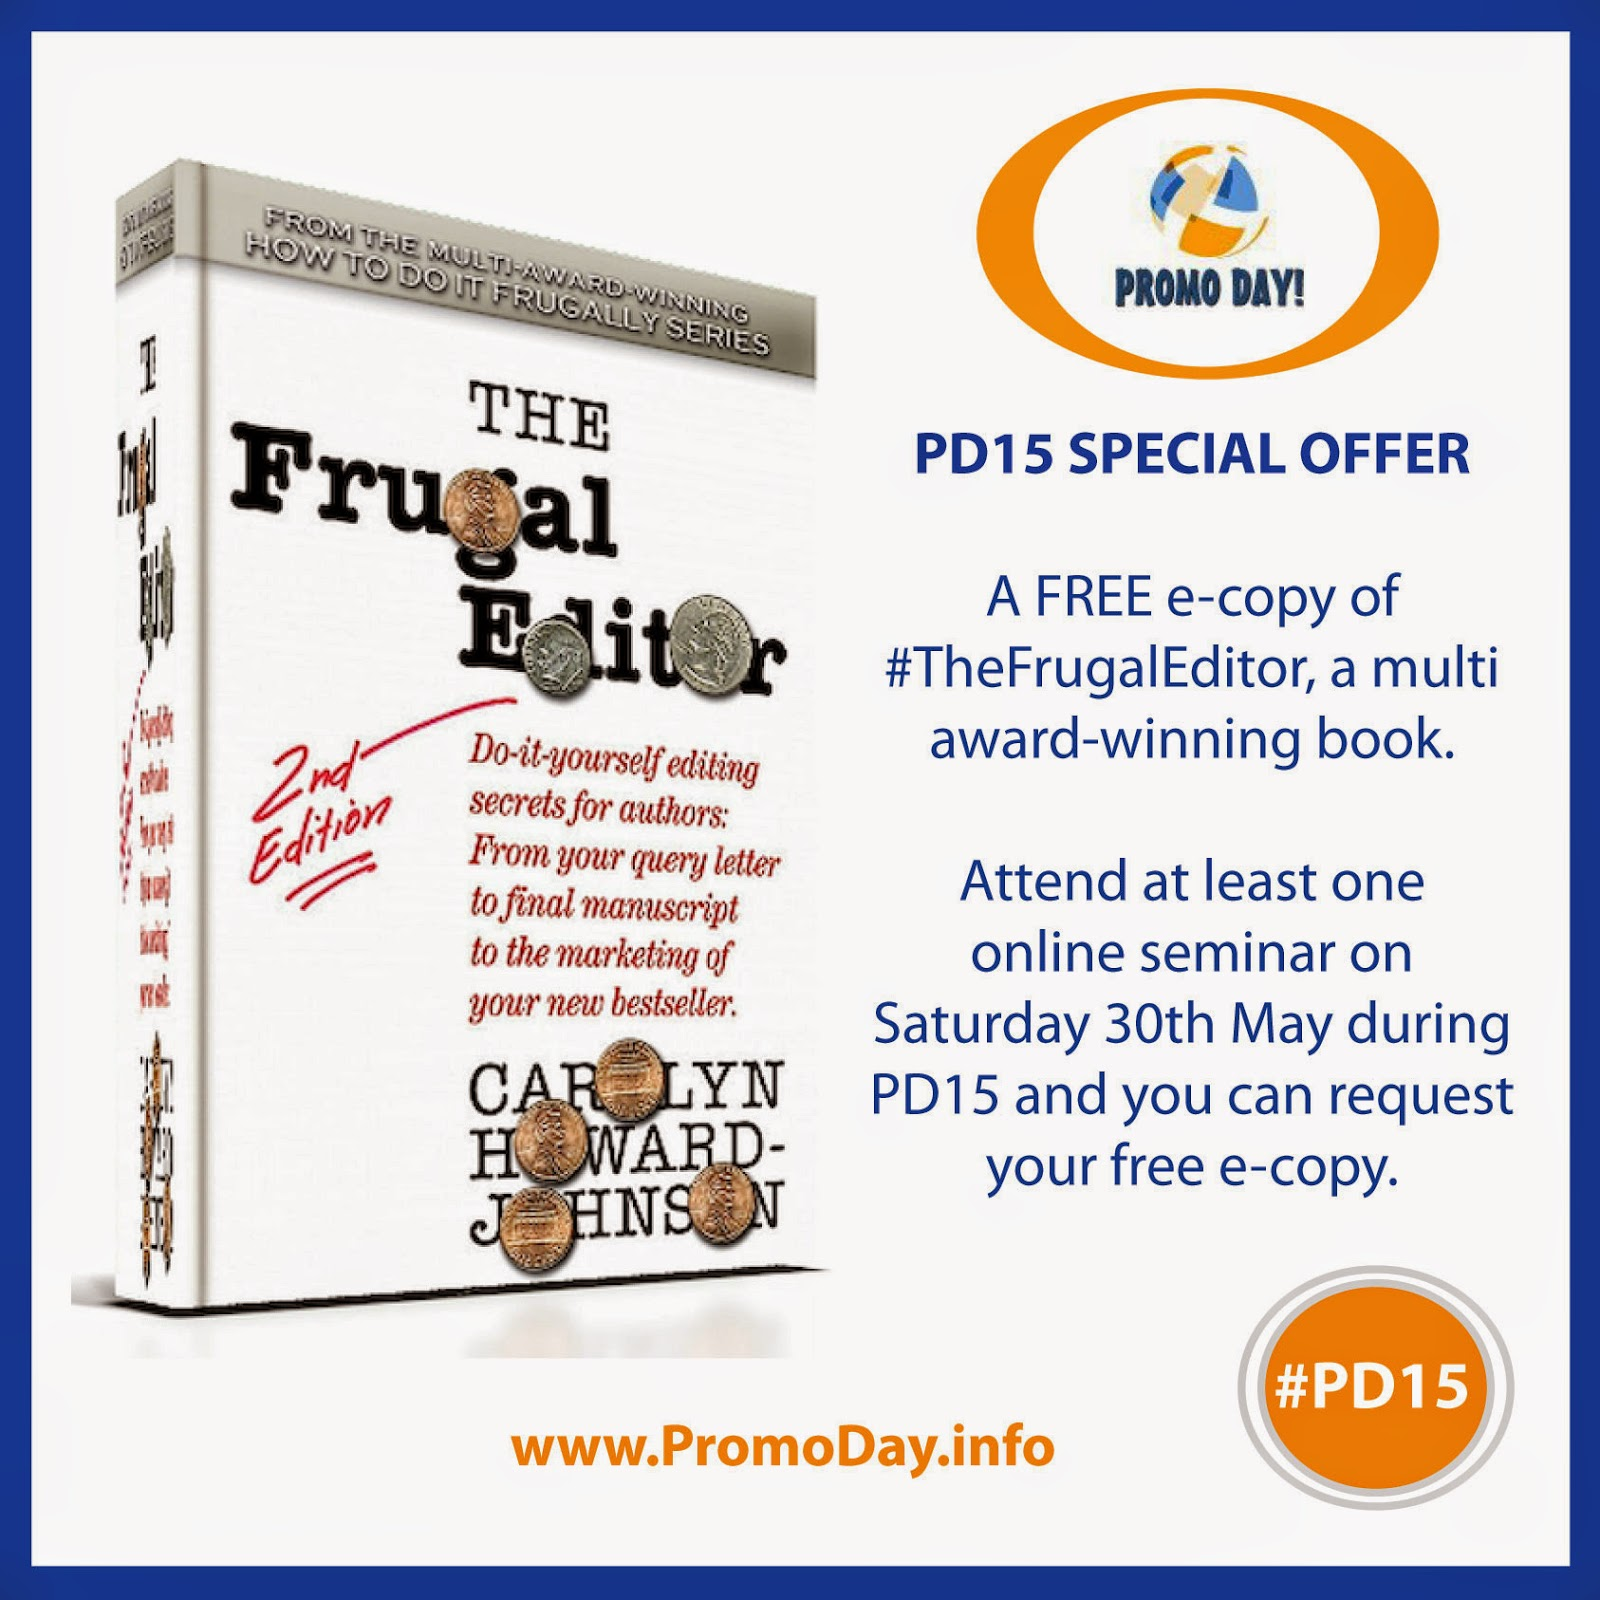 Attend #PD15 and get a FREE e-copy of a multi award-winning book by @frugalbookpromo